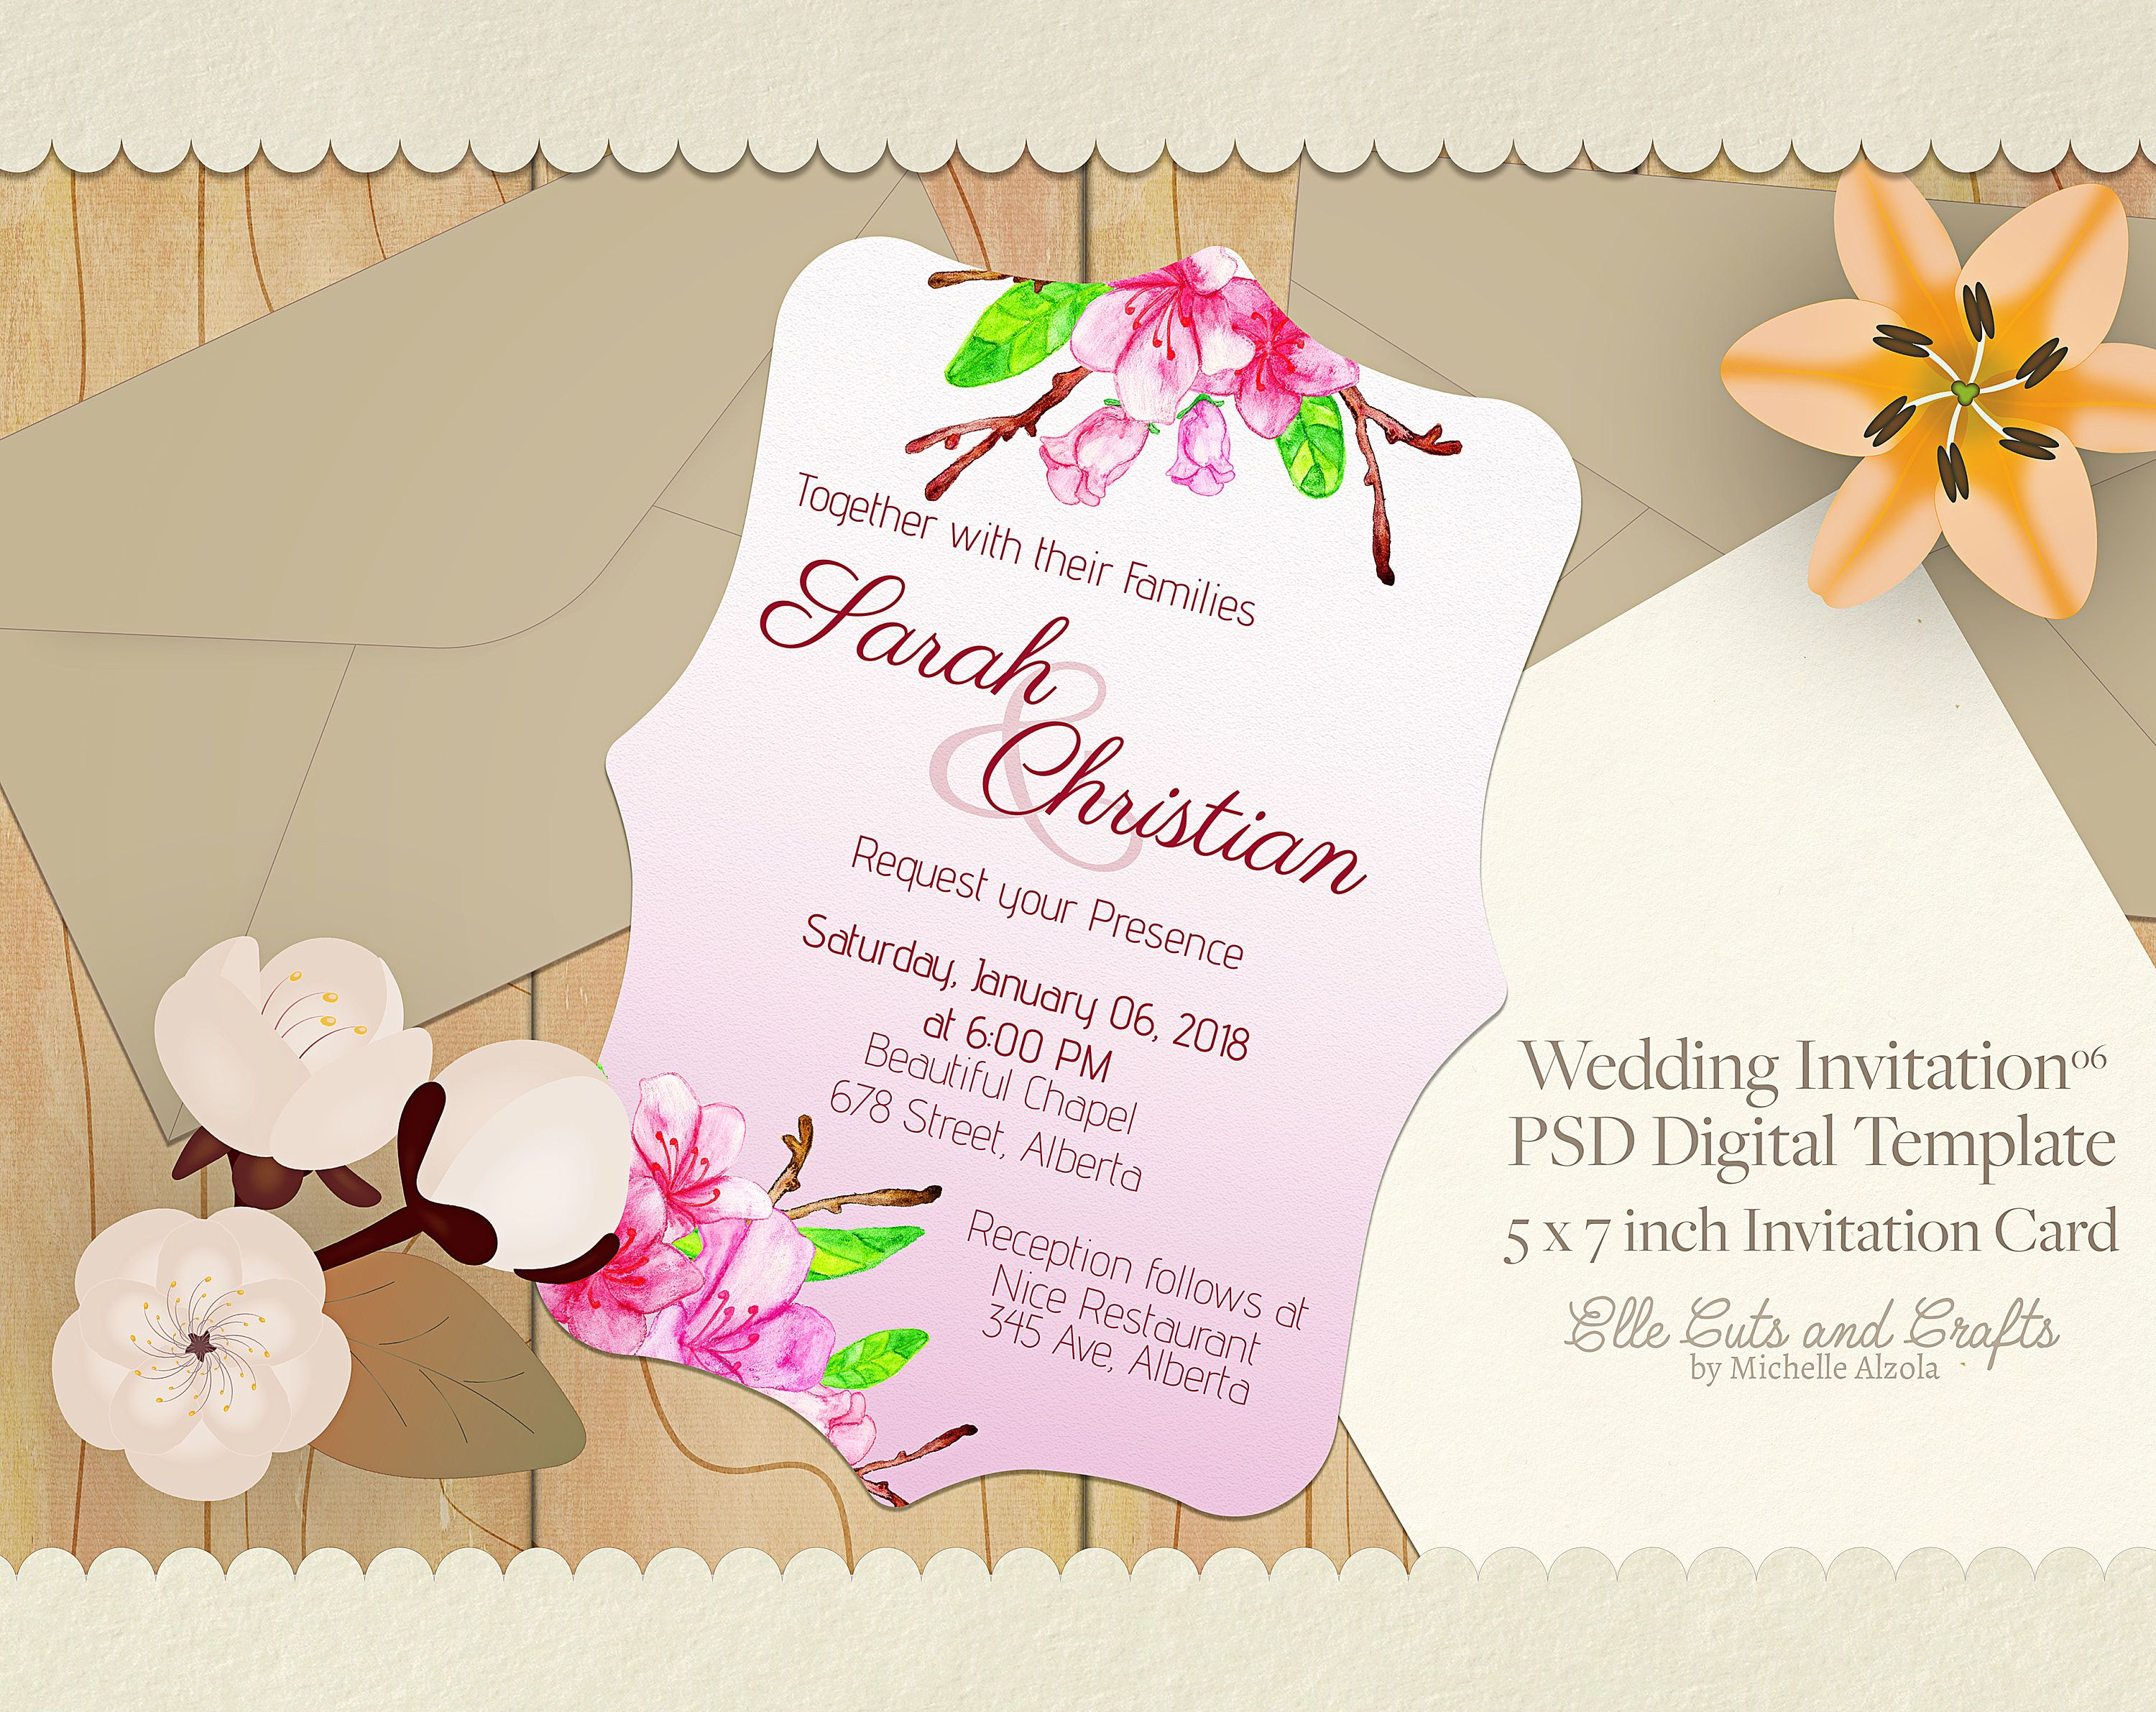 Wedding Invitation Template - Digital Download, Digital Template ...